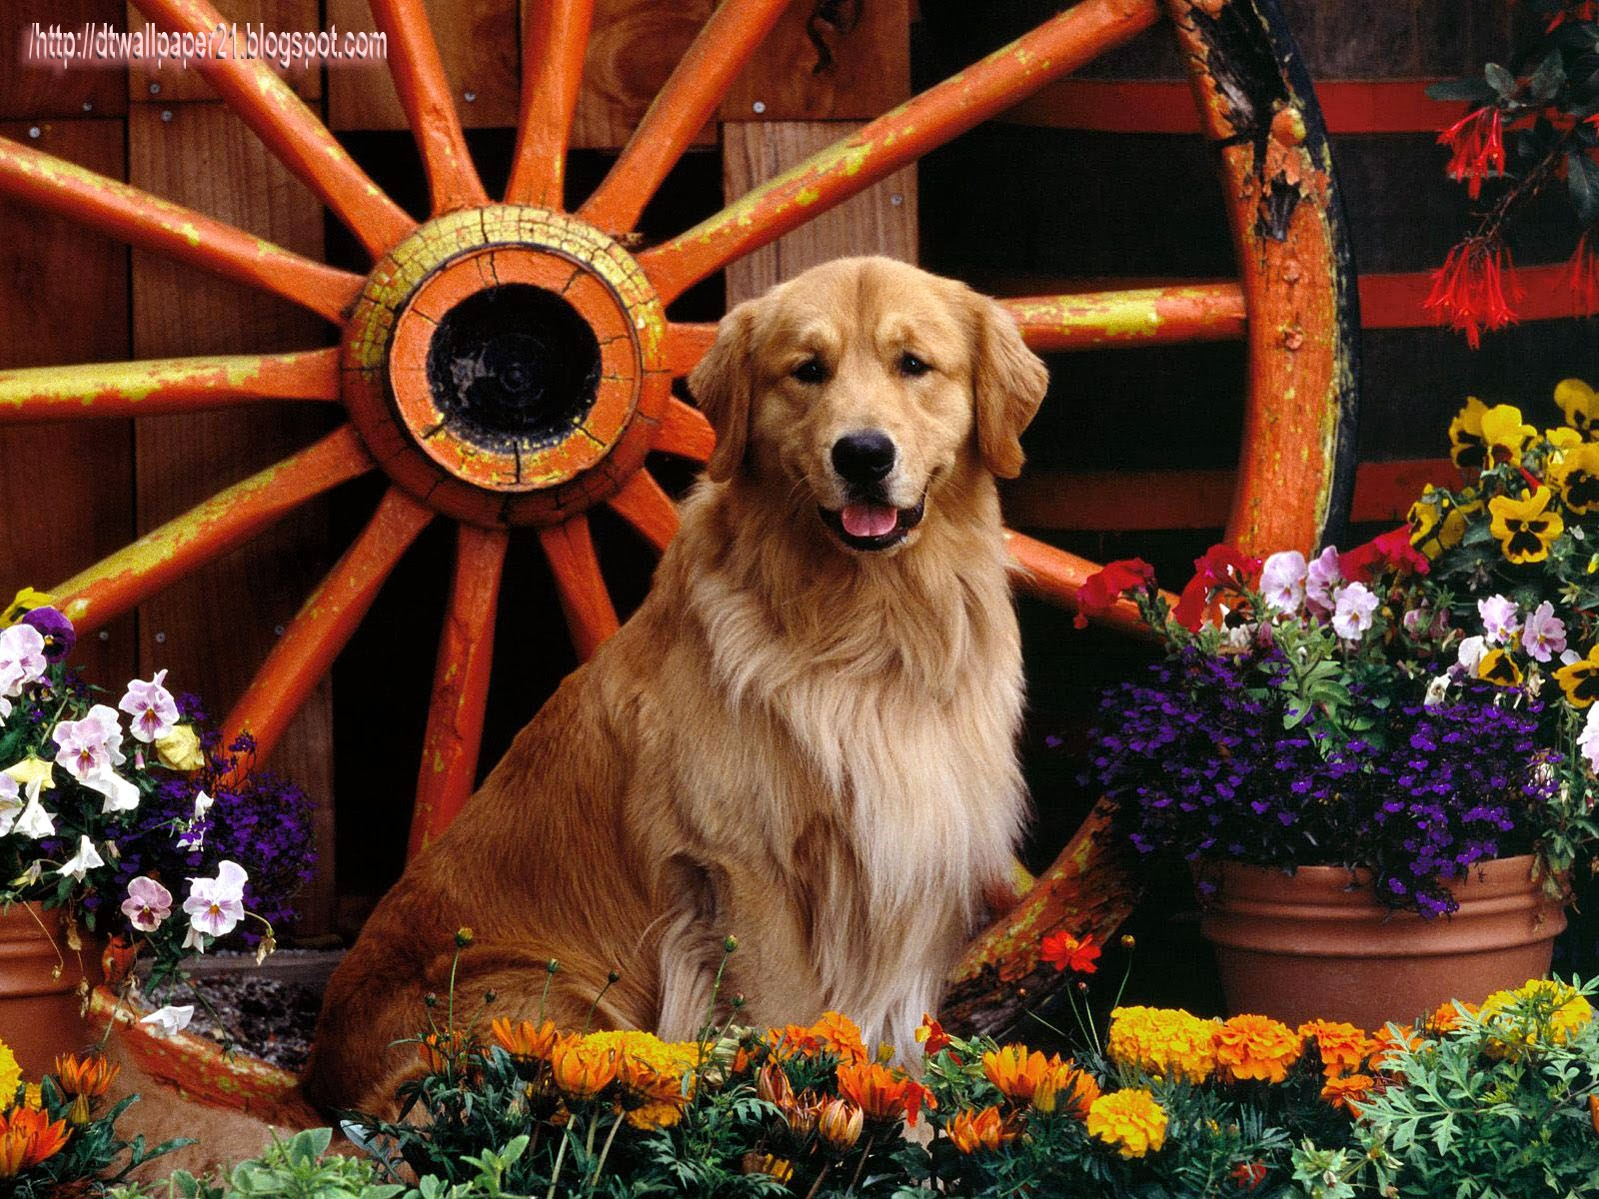 others, animal wallpaper, cool dogs, dog pictures, dogs,;